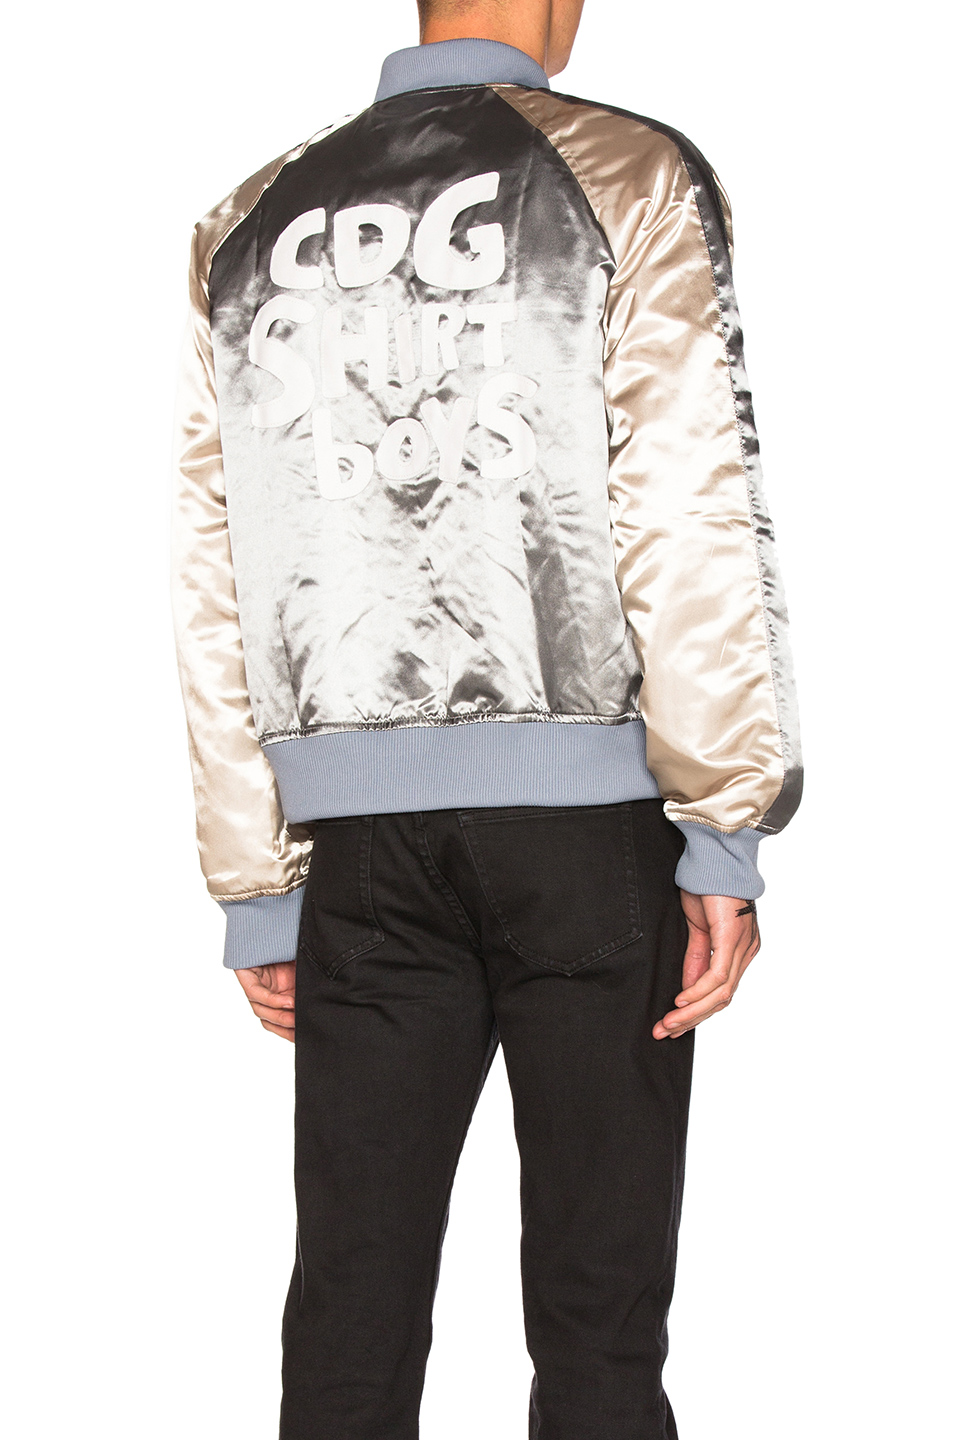 Comme Des Garcons SHIRT Polyester Cloth Quilted Bomber Jacket in Metallics,Gray,Blue